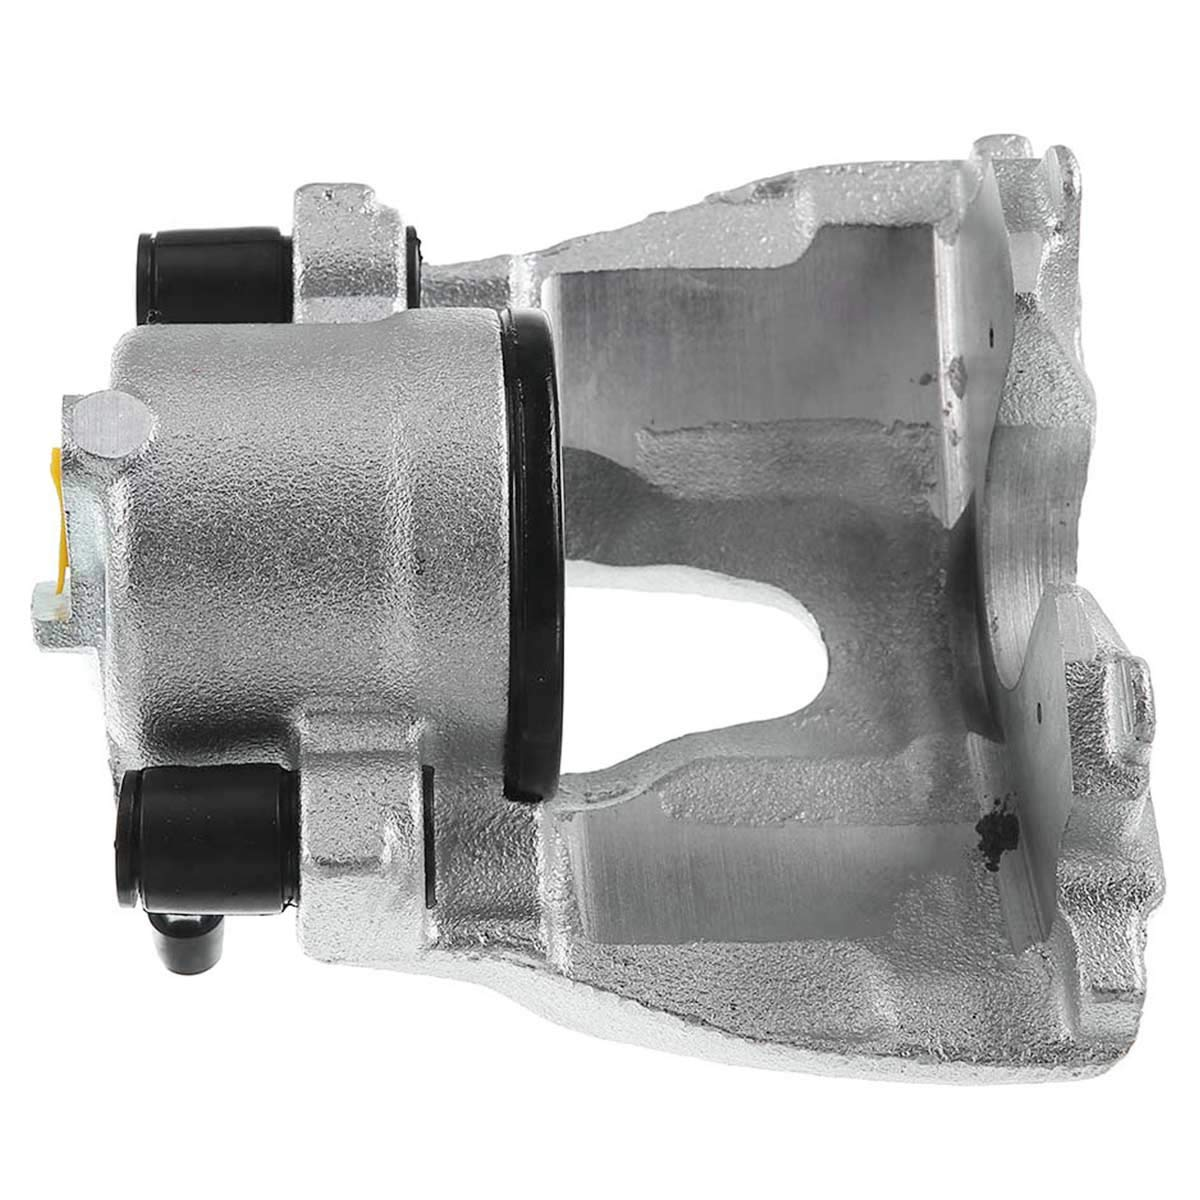 A-Premium Brake Caliper Without Bracket Compatible with Chevrolet Astra 2001-2003 Saab 9-3 900 1997-2009 Saturn Astra L100 L300 LS 2000-2009 Front Driver Side